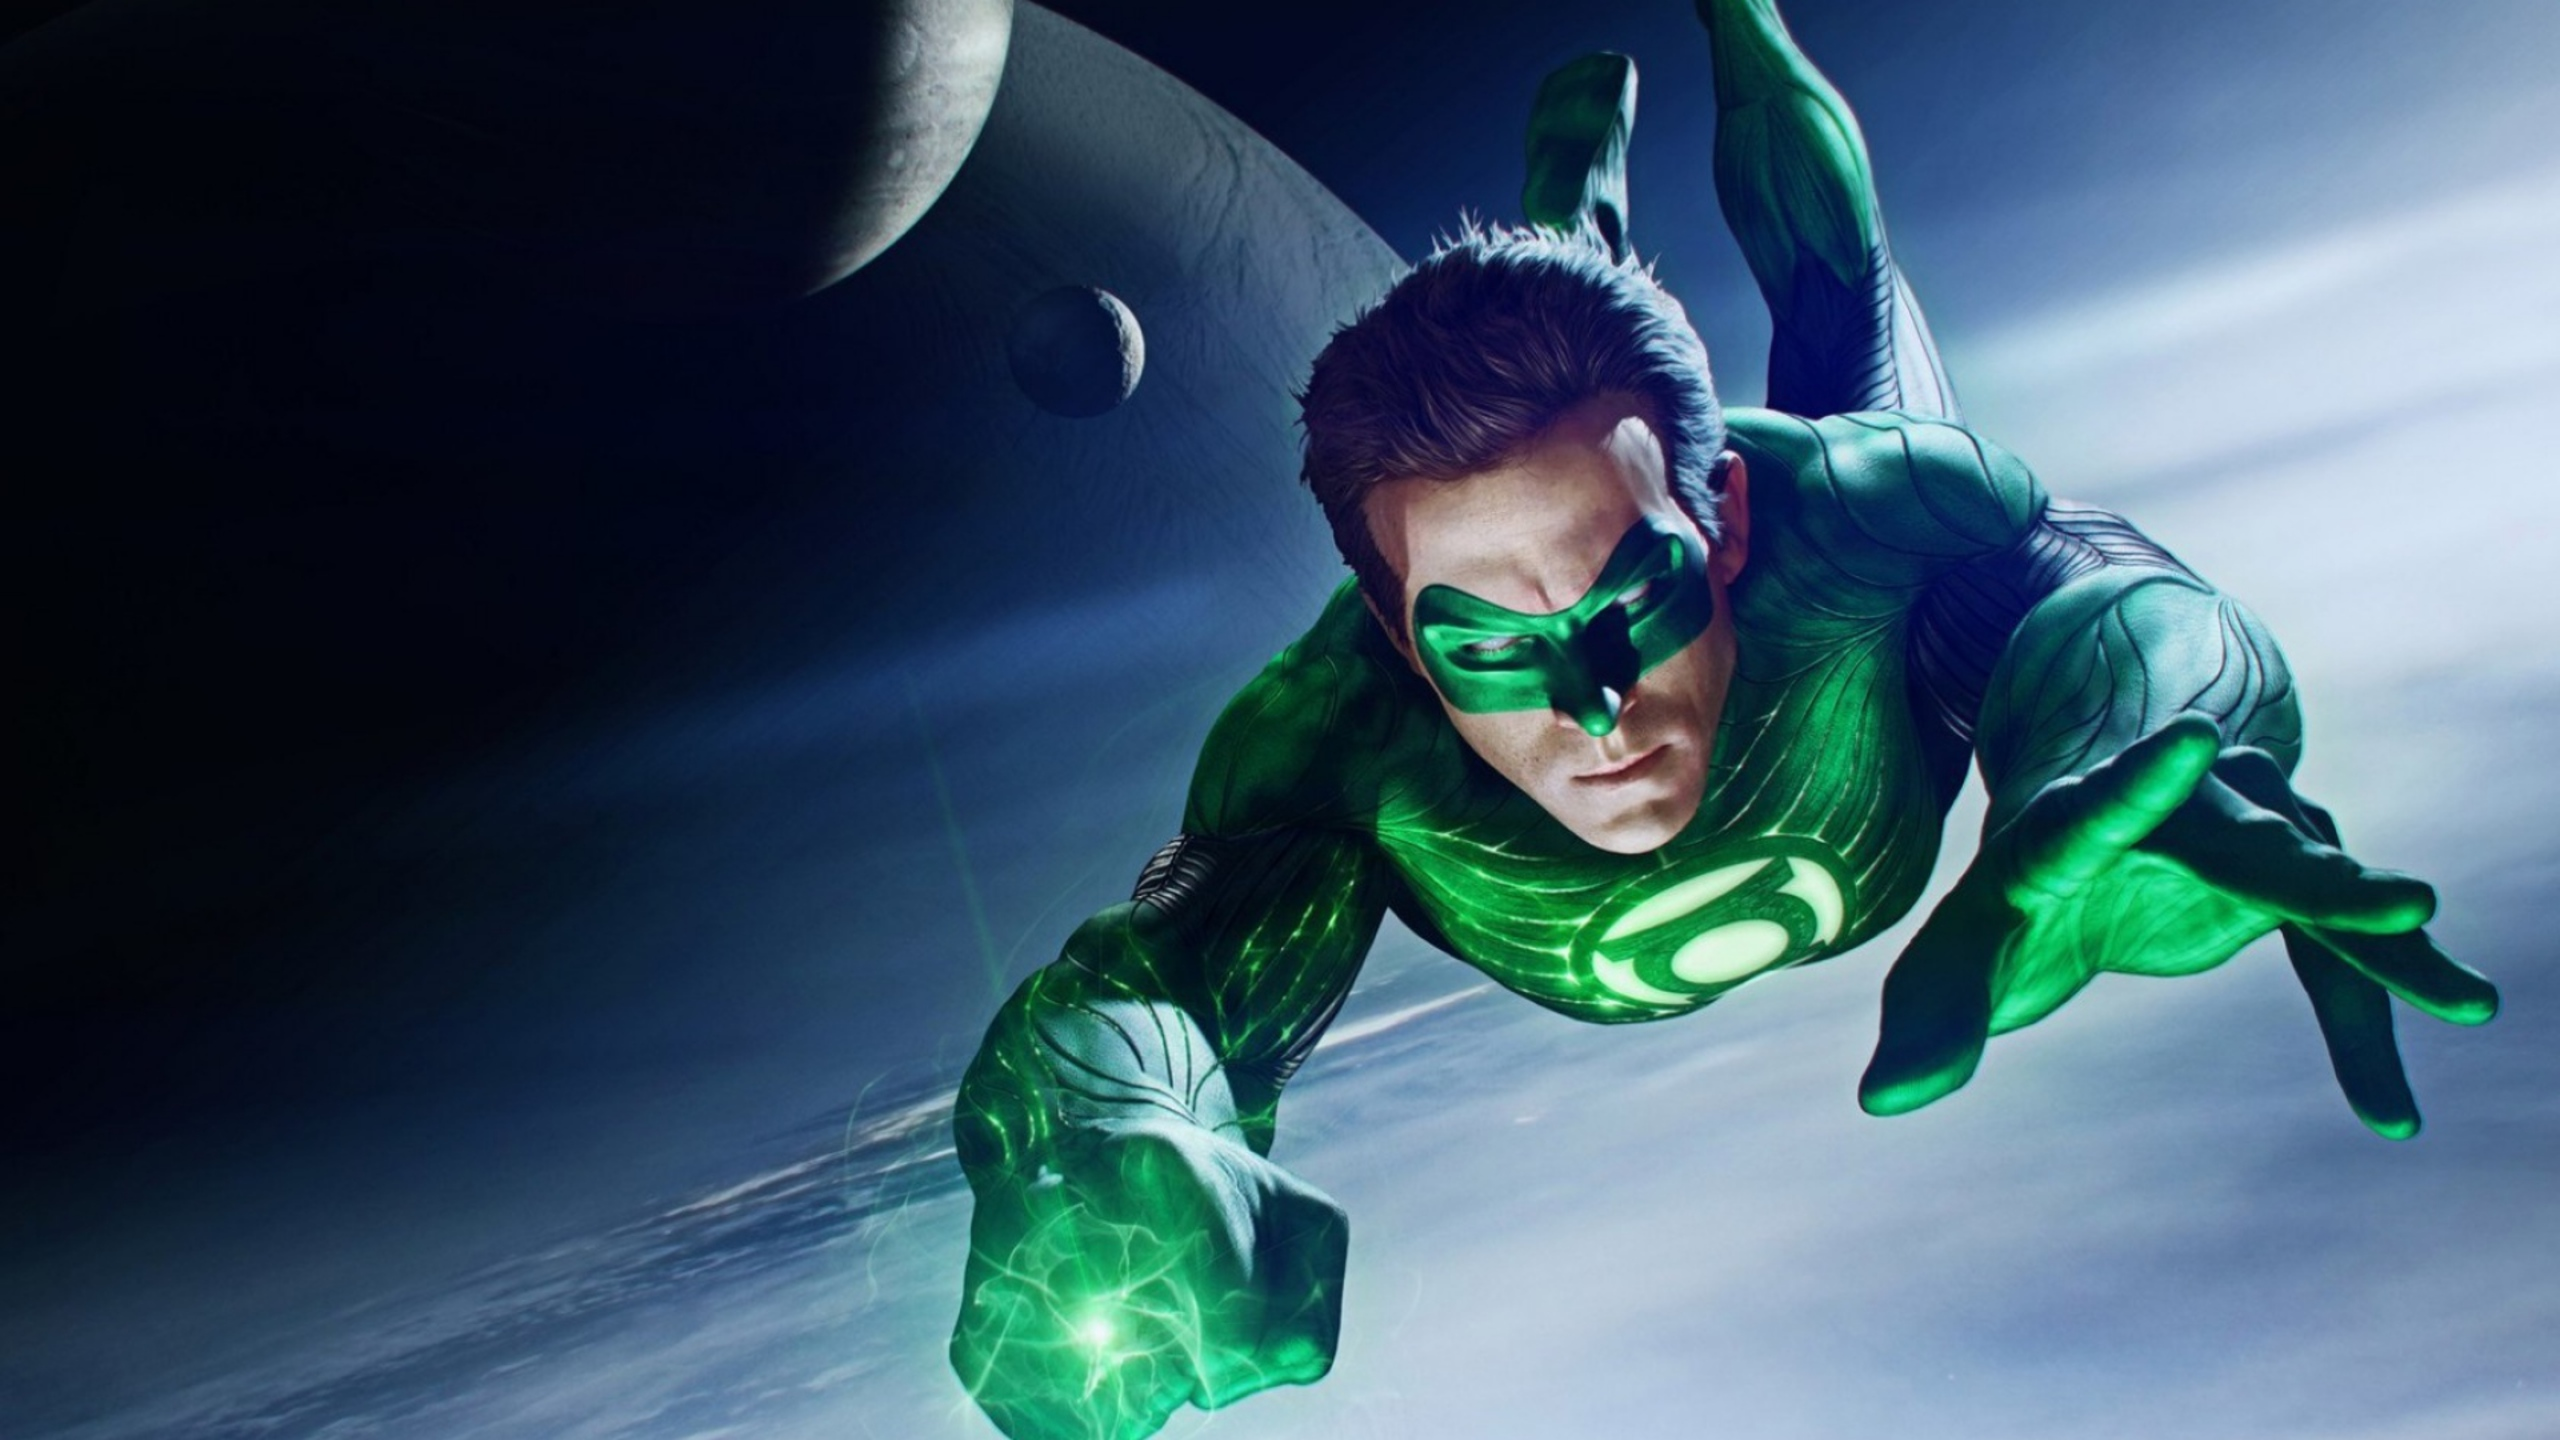 Green Lantern Hd Wallpaper For Android